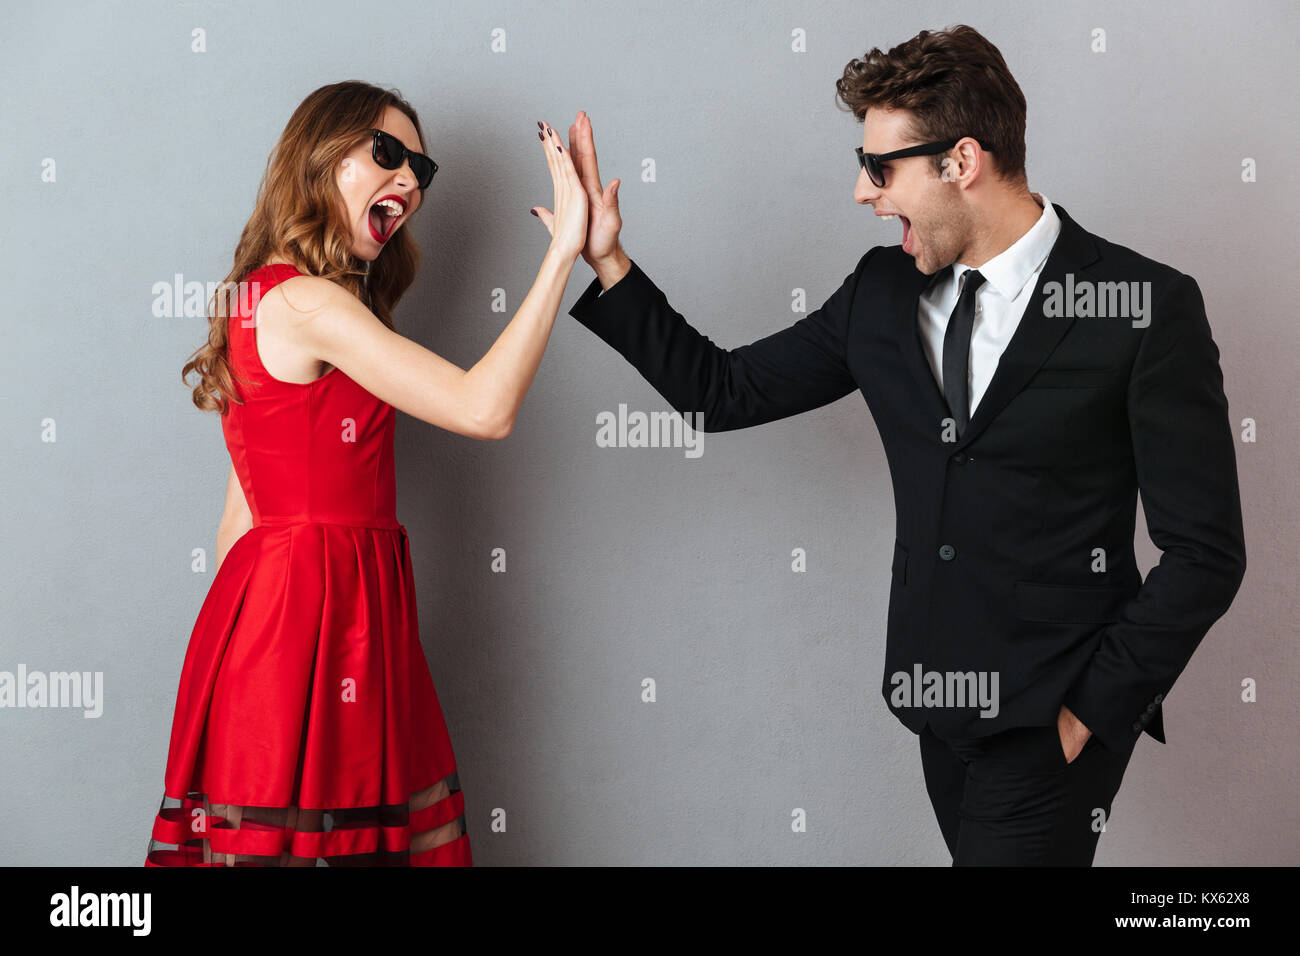 Portrait of a cheerful young couple dressed in formal wear and sunglasses standing and giving high five over gray - Stock Image